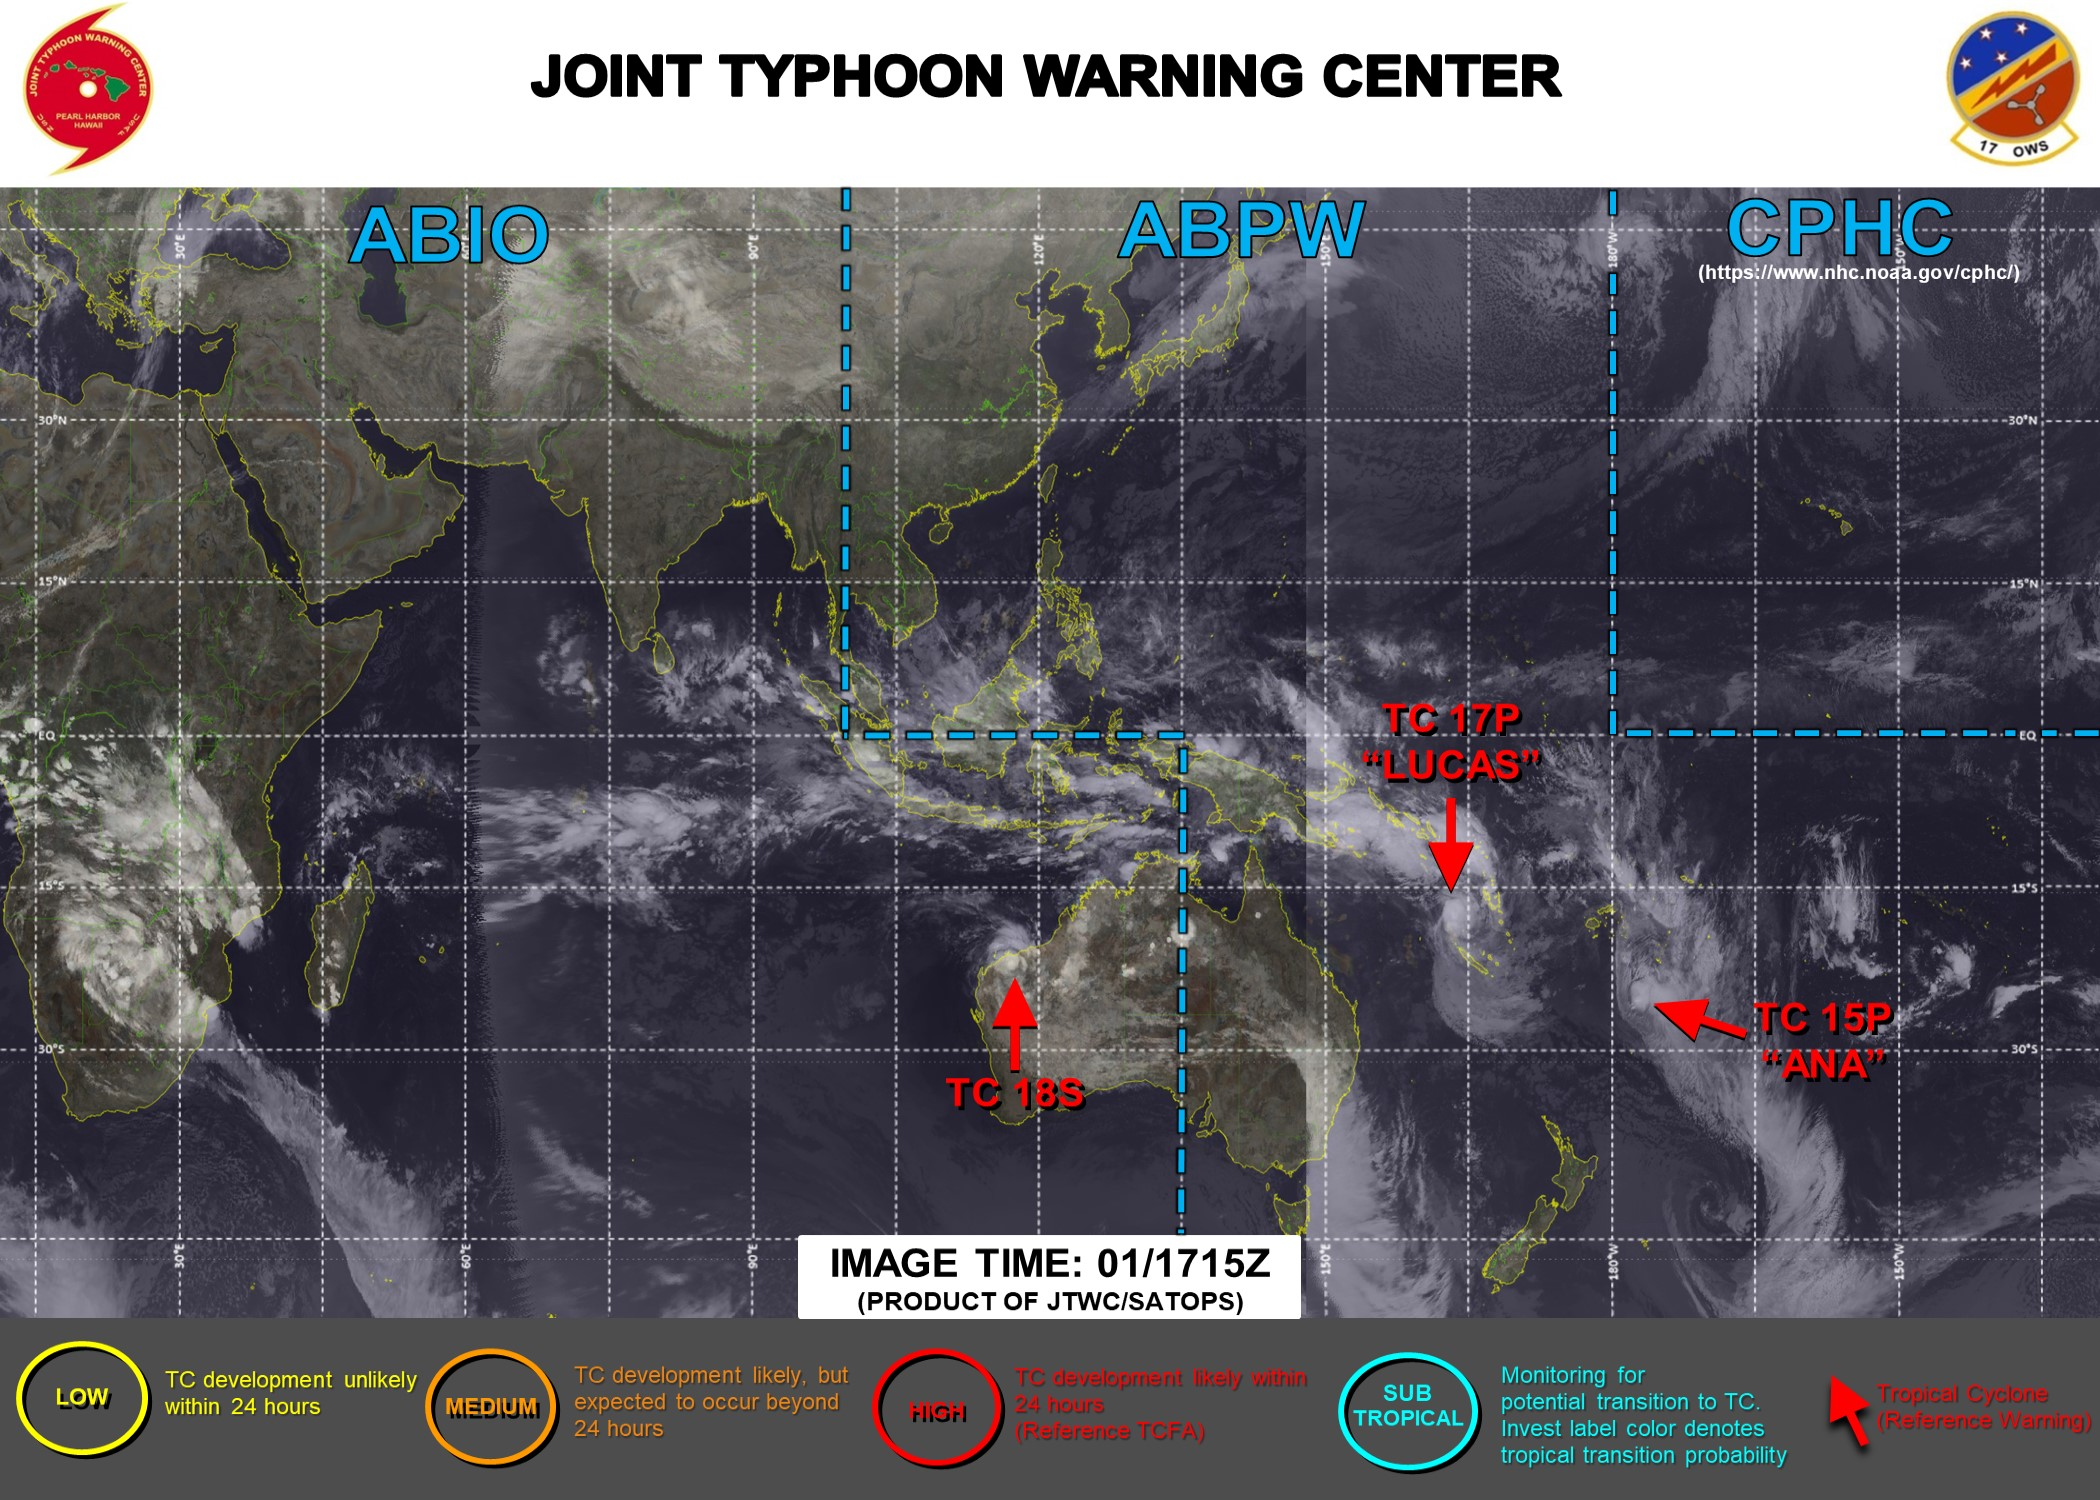 JTWC IS ISSUING 6HOURLY WARNINGS ON 17P(LUCAS) AND 18S. WARNING 12/FINAL WAS ISSUED AT 01/21UTC FOR 15P(ANA). 3 HOURLY SATELLITE BULLETINS ARE PROVIDED 15P,17P AND 18S.